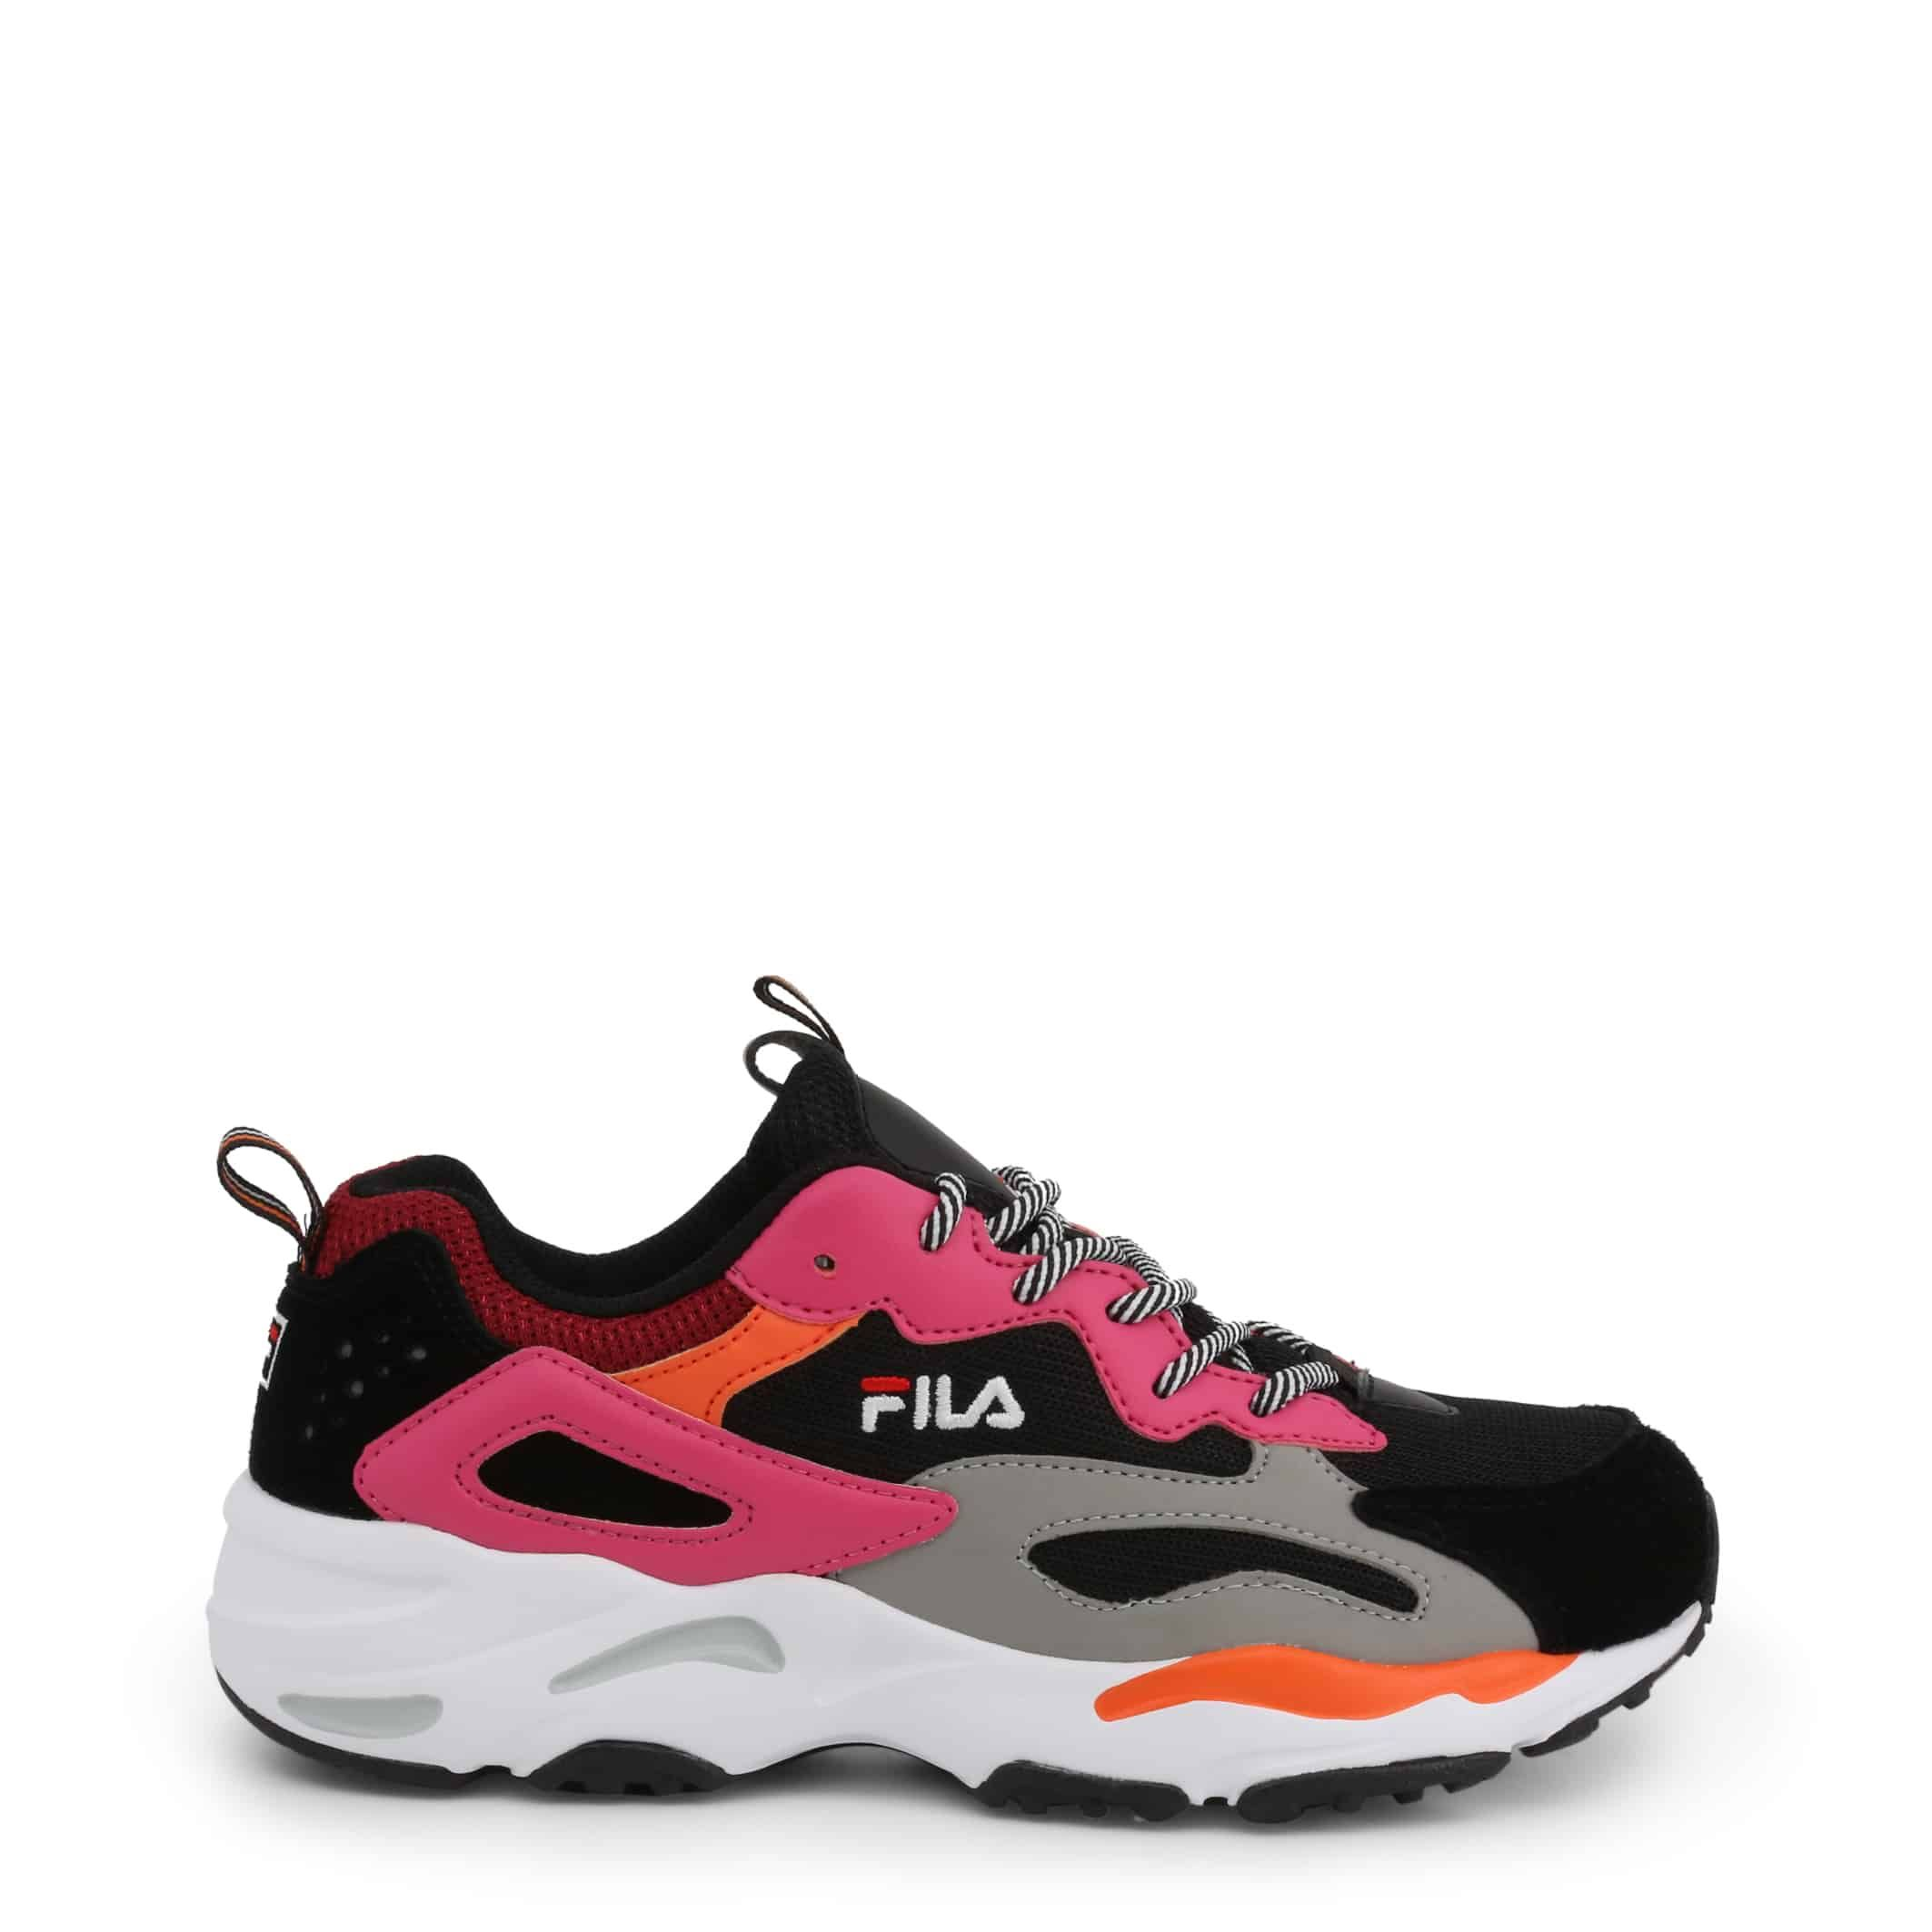 Fila - RAY-TRACER  | You Fashion Outlet